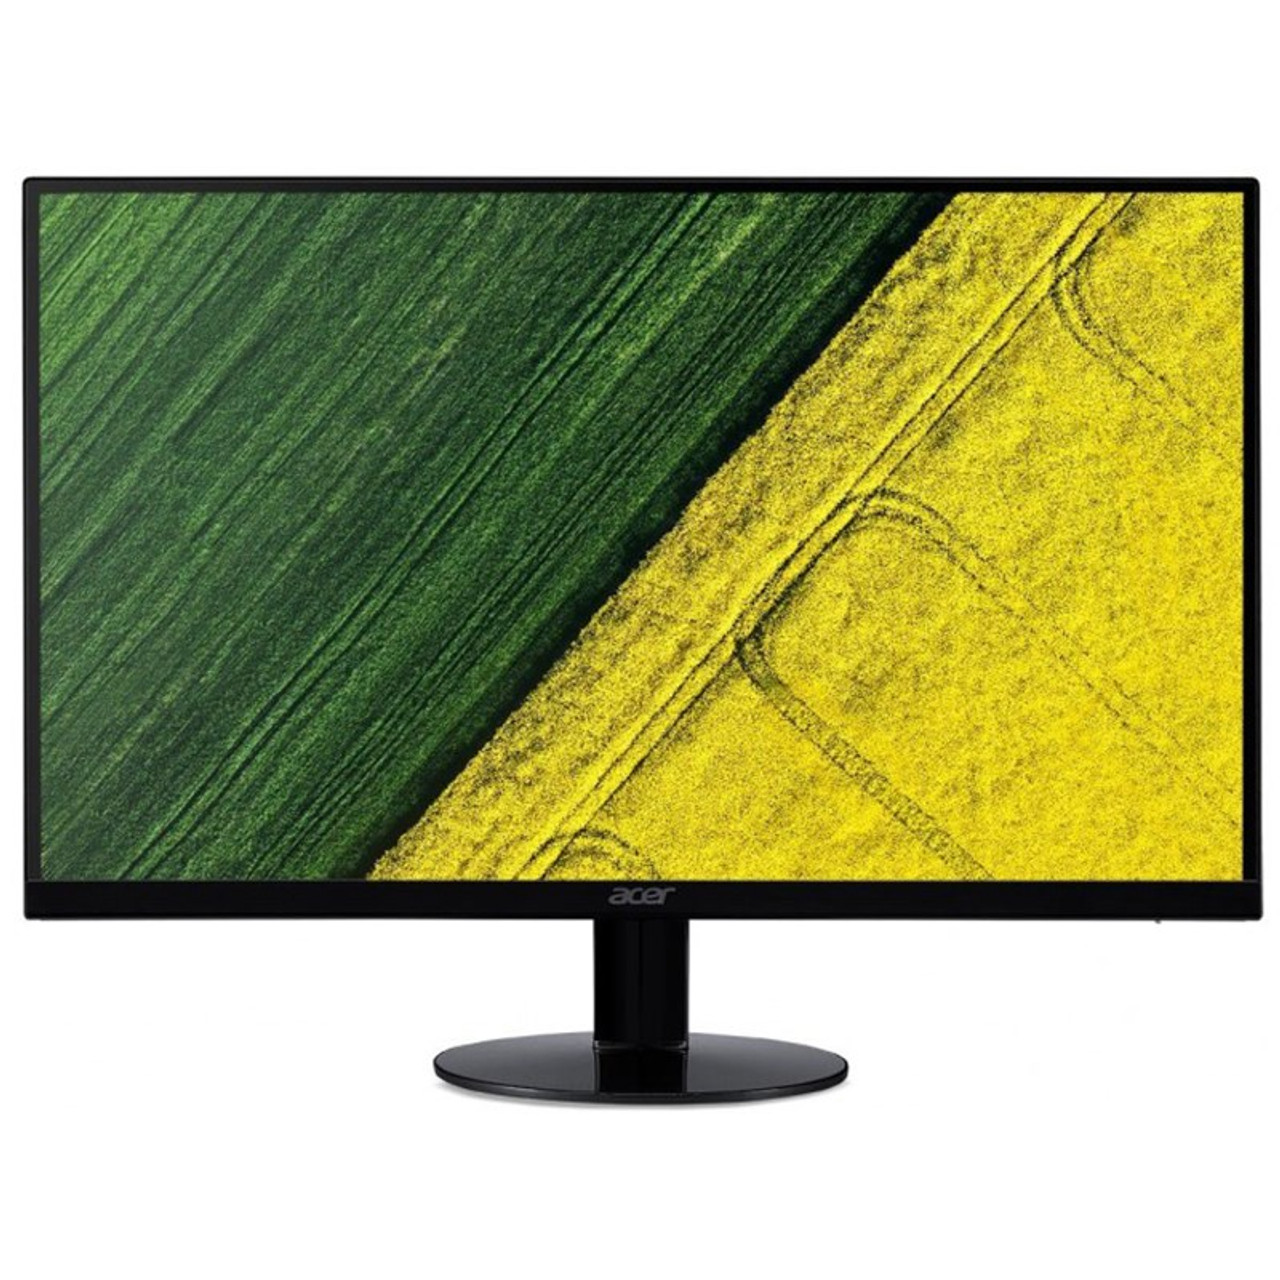 Image for Acer SA240YB 23.8in 75Hz Full HD FreeSync IPS Monitor CX Computer Superstore